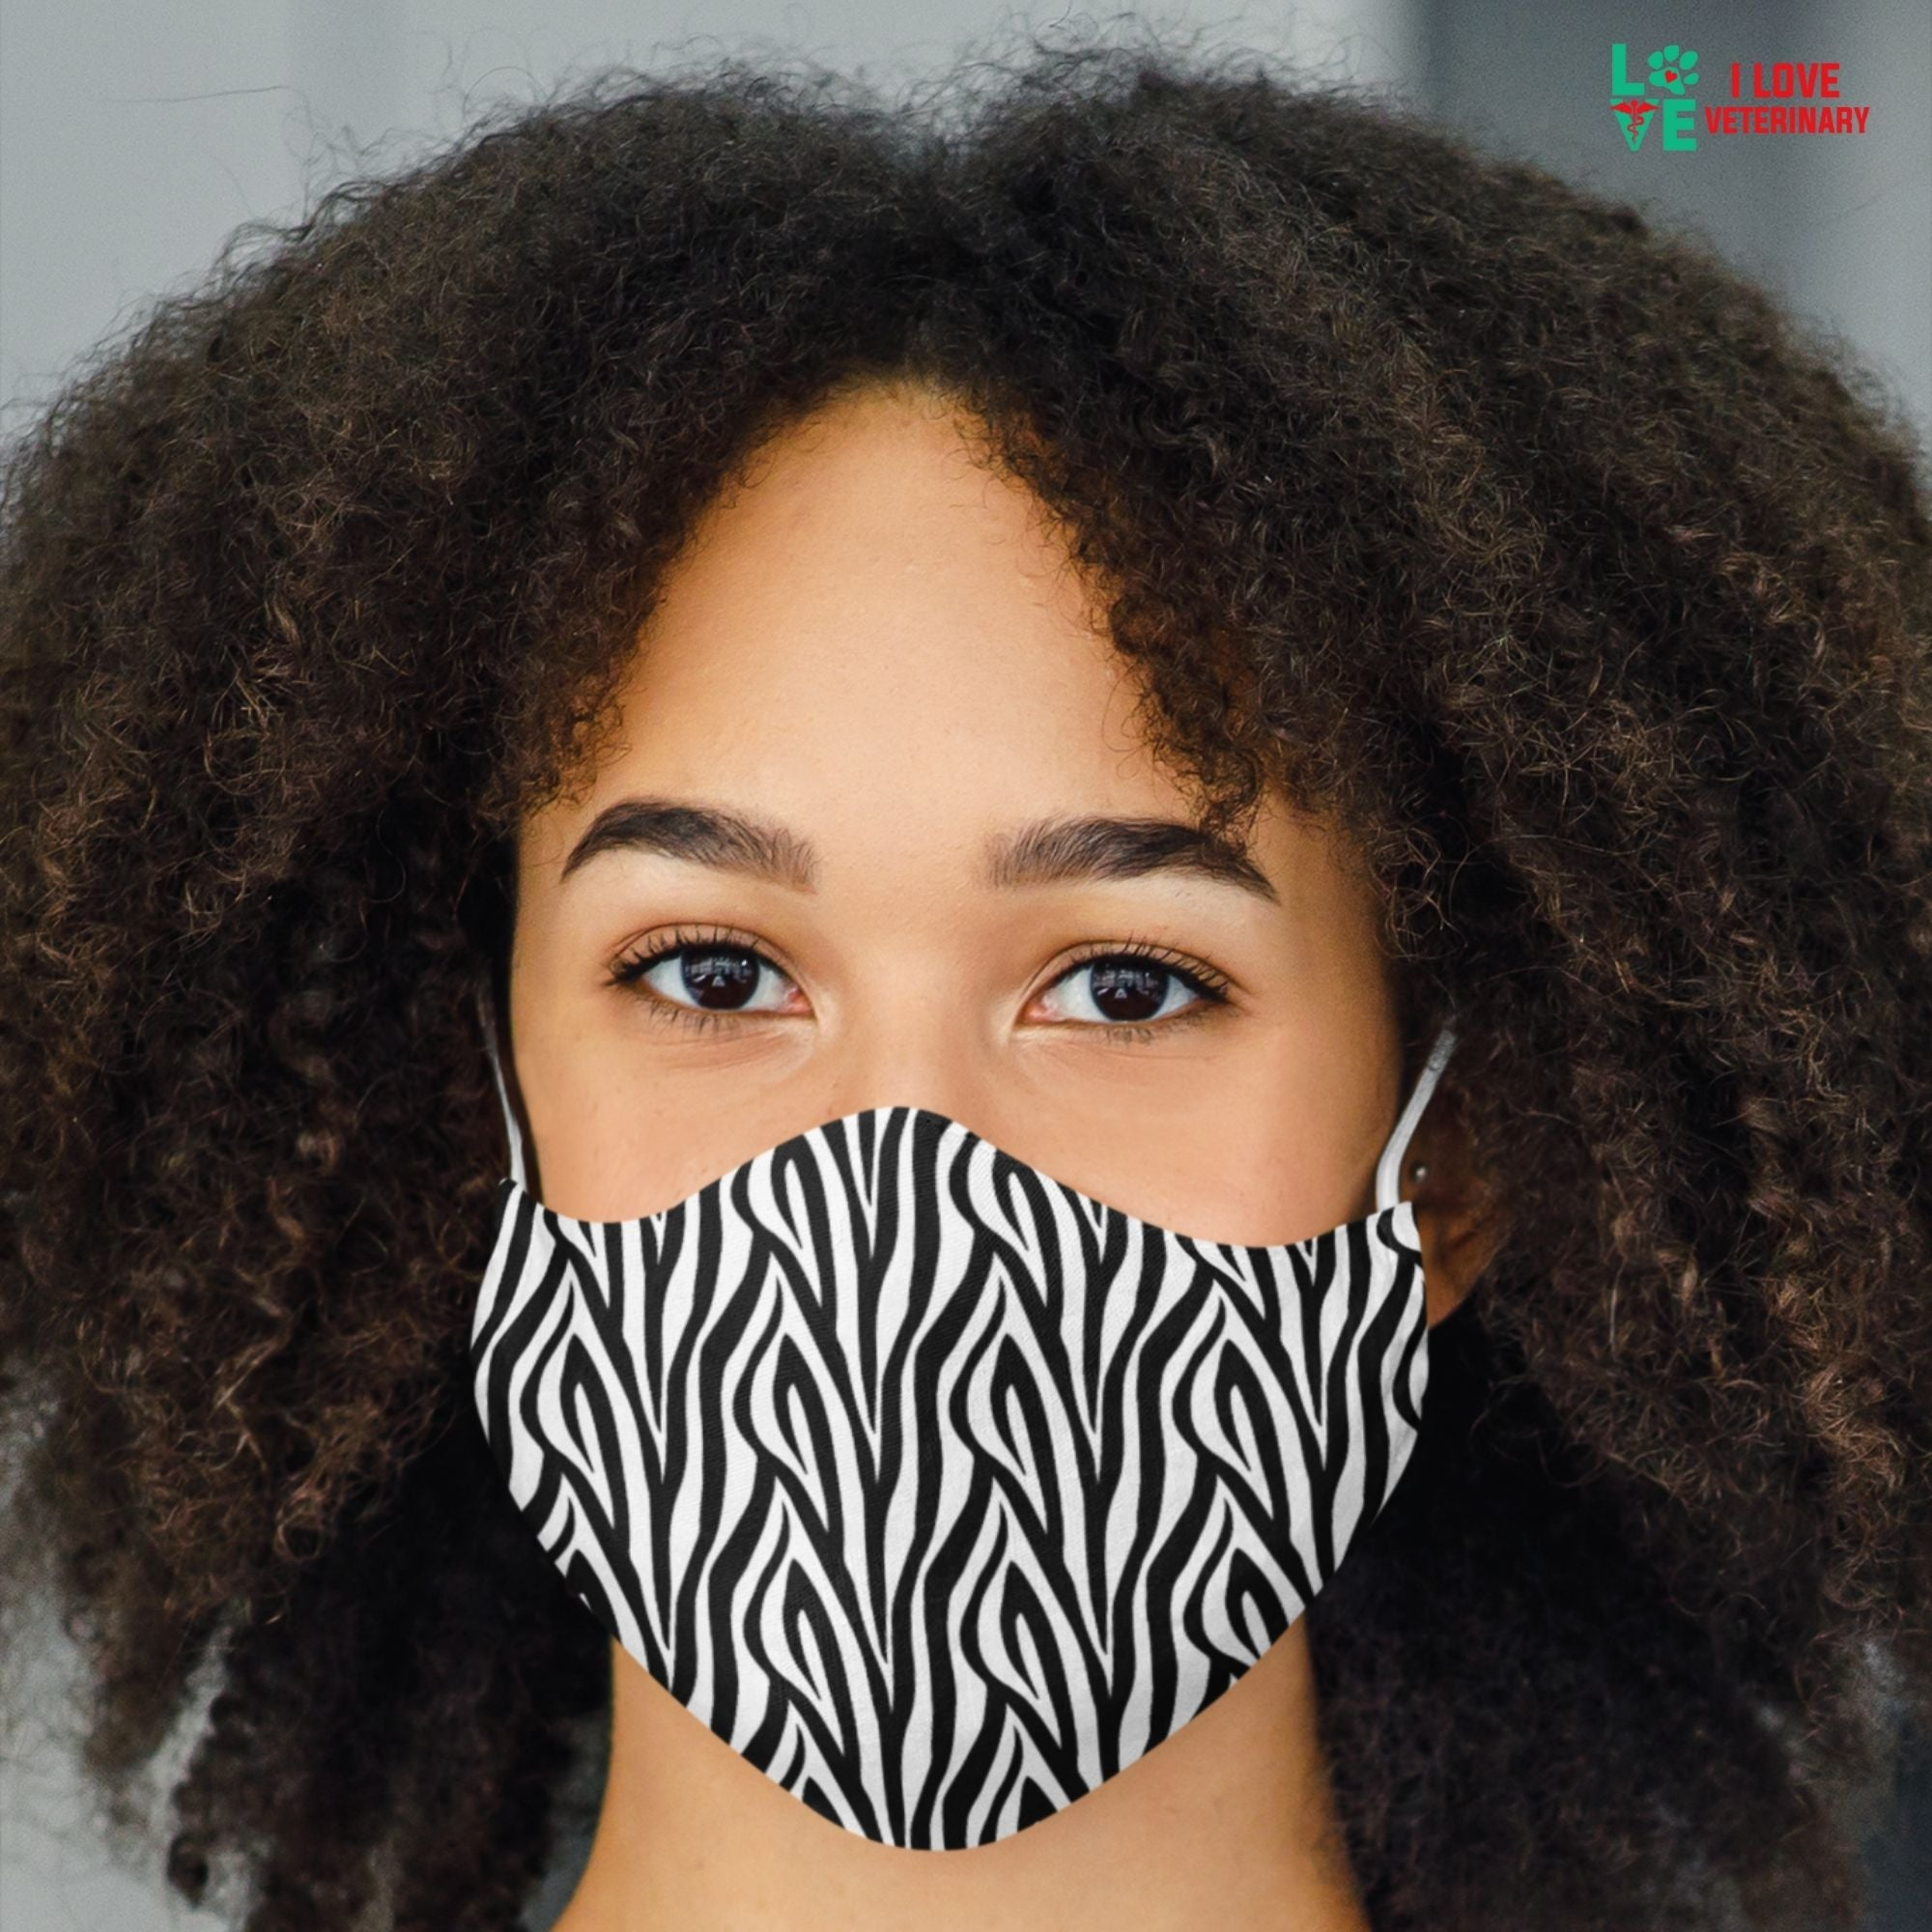 Zebra skin pattern Sublimation Face Mask-Accessories-I love Veterinary